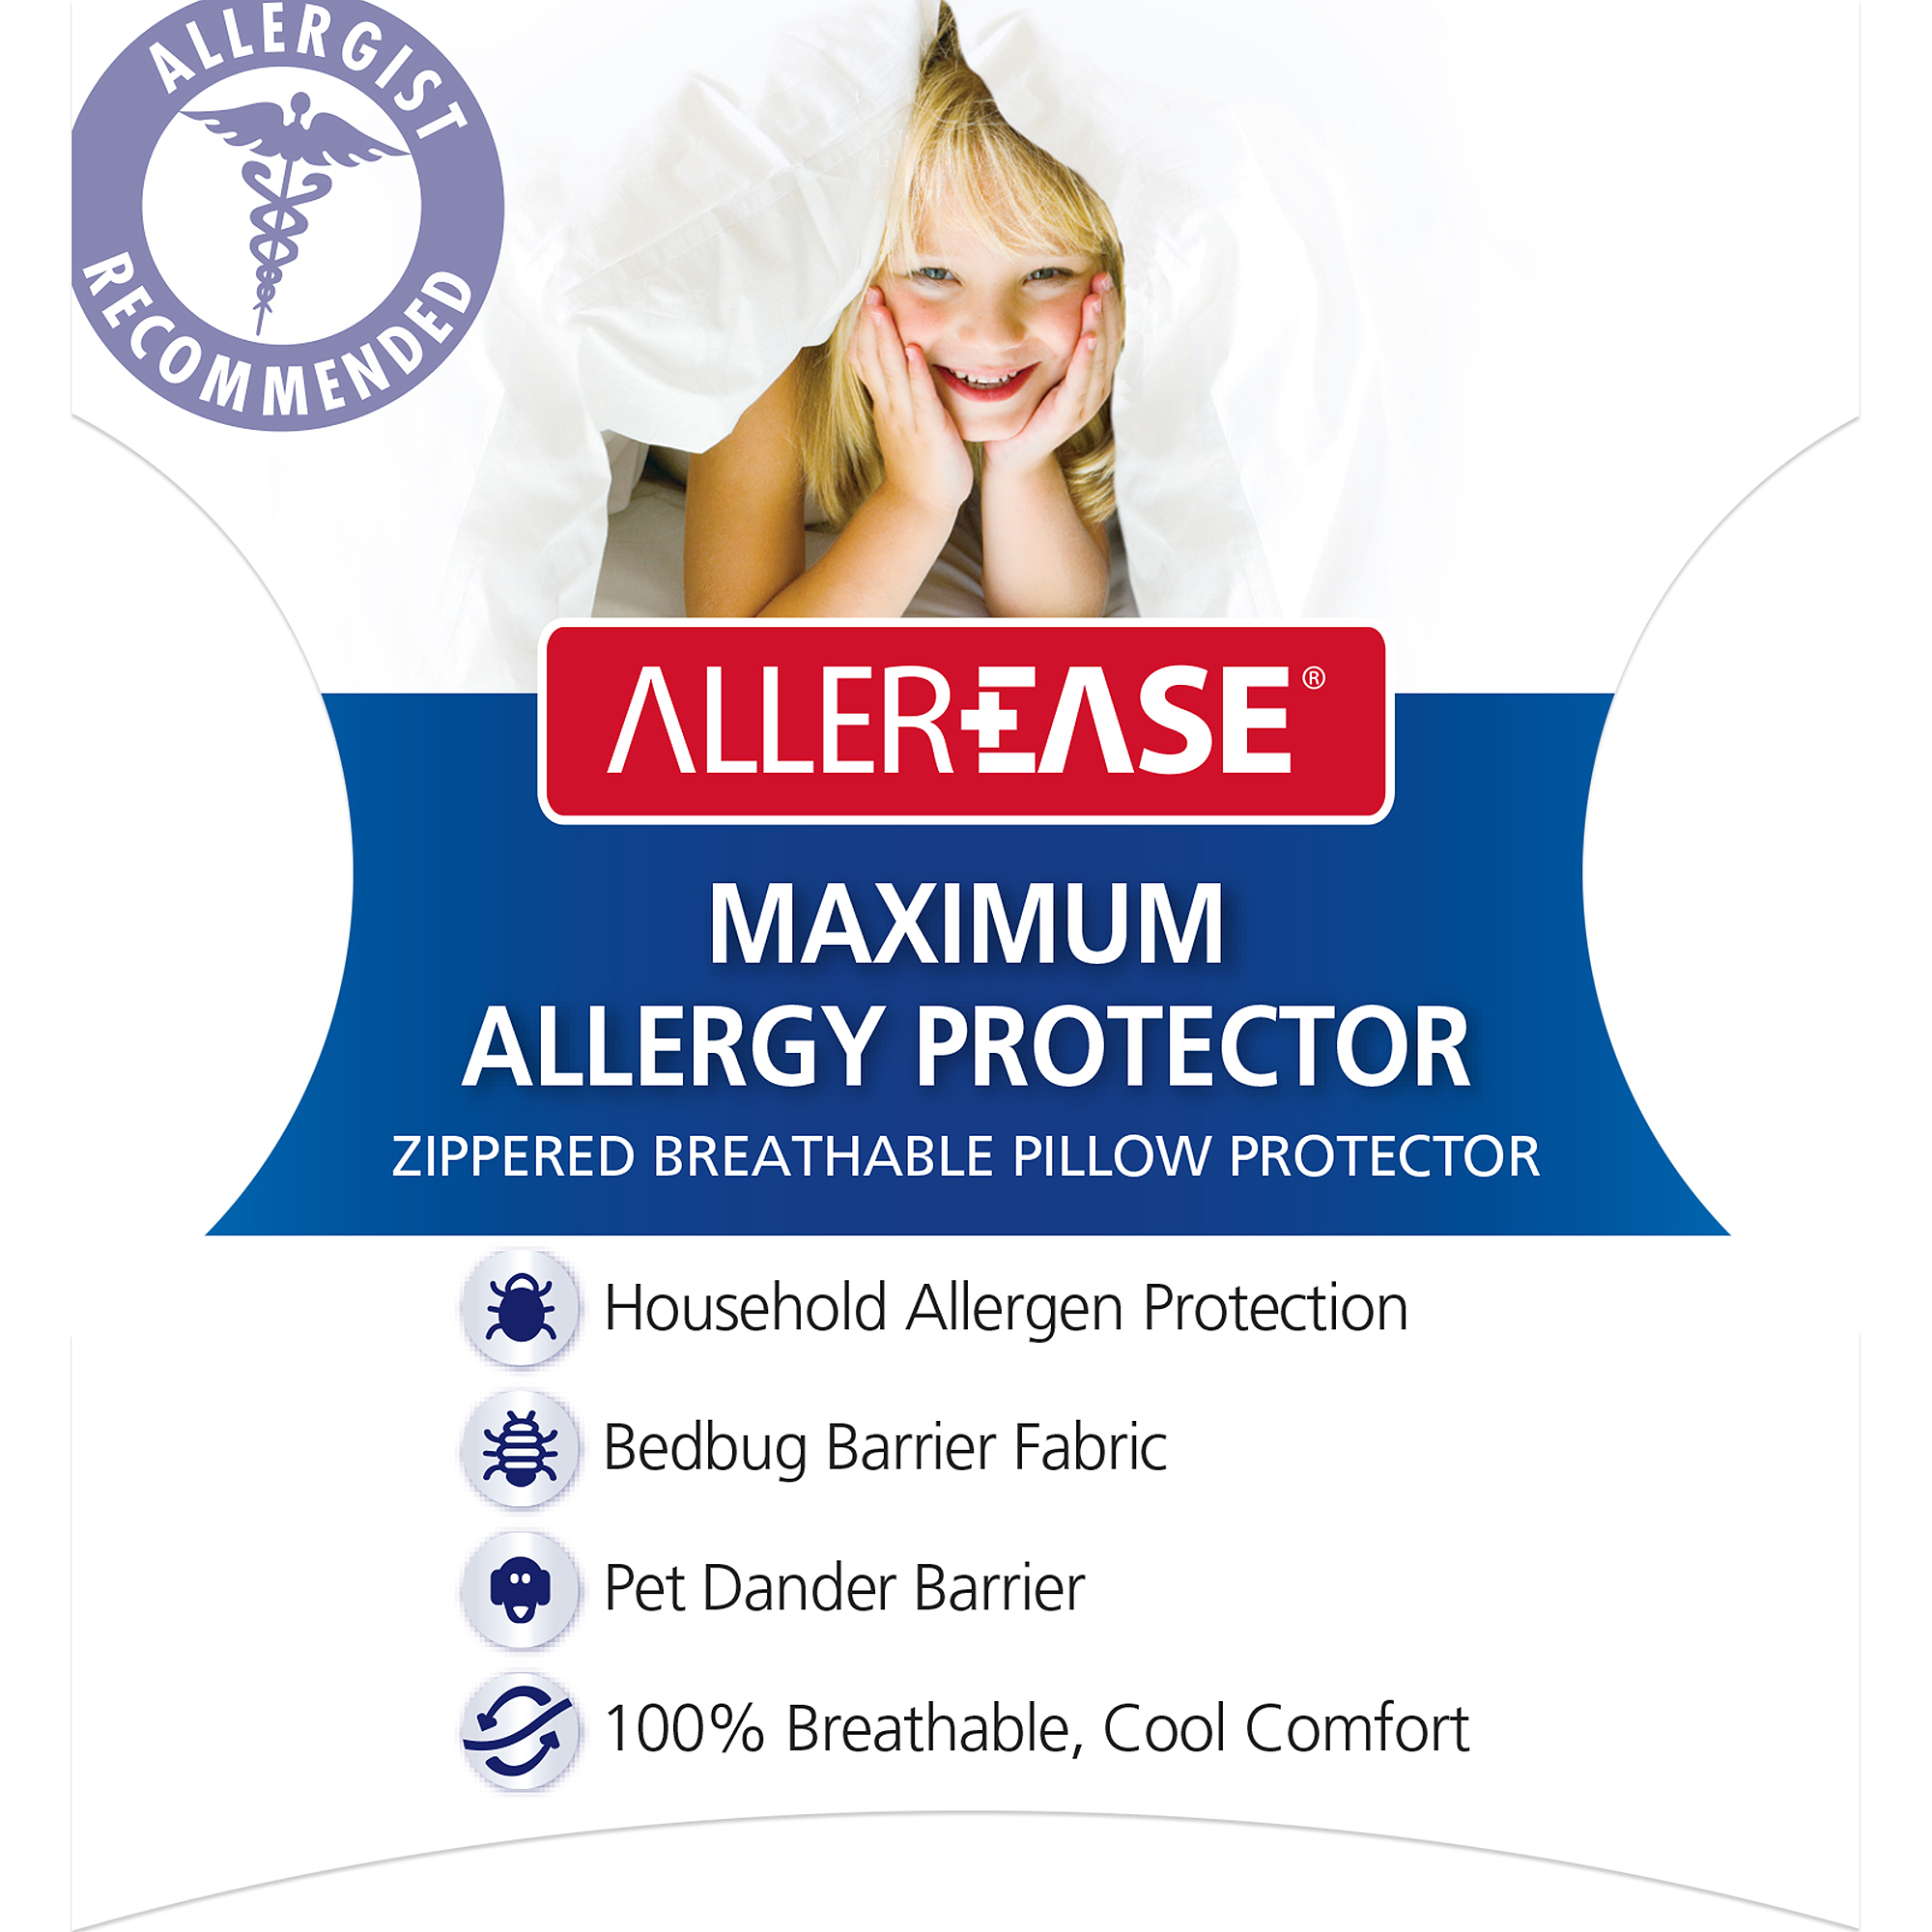 AllerEase Maximum Bed Bug Protection Zippered Pillow Protector, 10 Year Warranty by American Textile Company